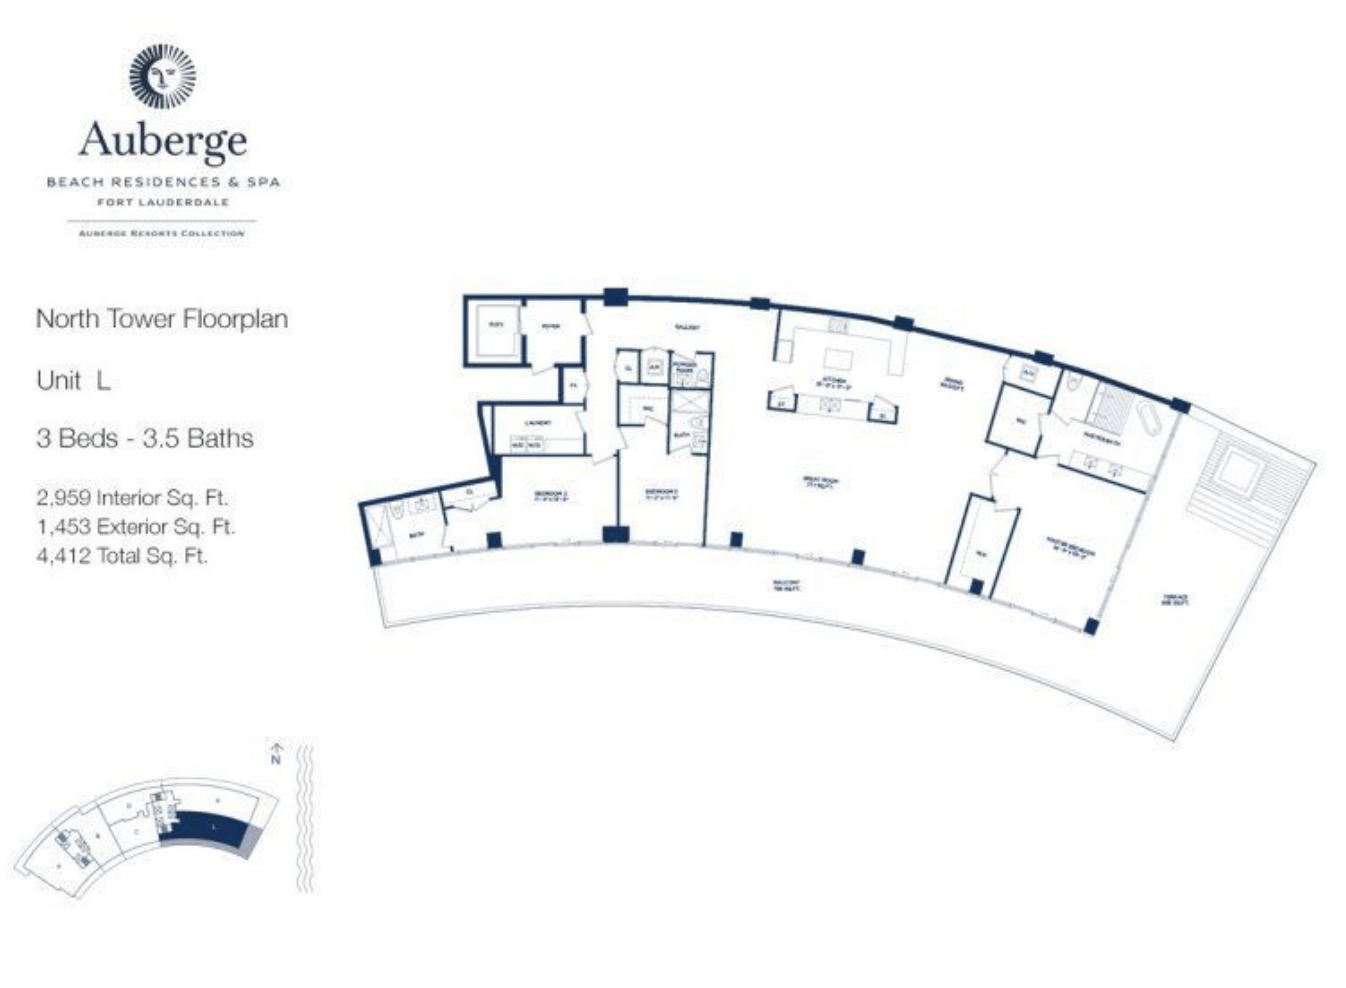 Auberge Beach Residences North Tower L | 3 Beds - 3.5 baths